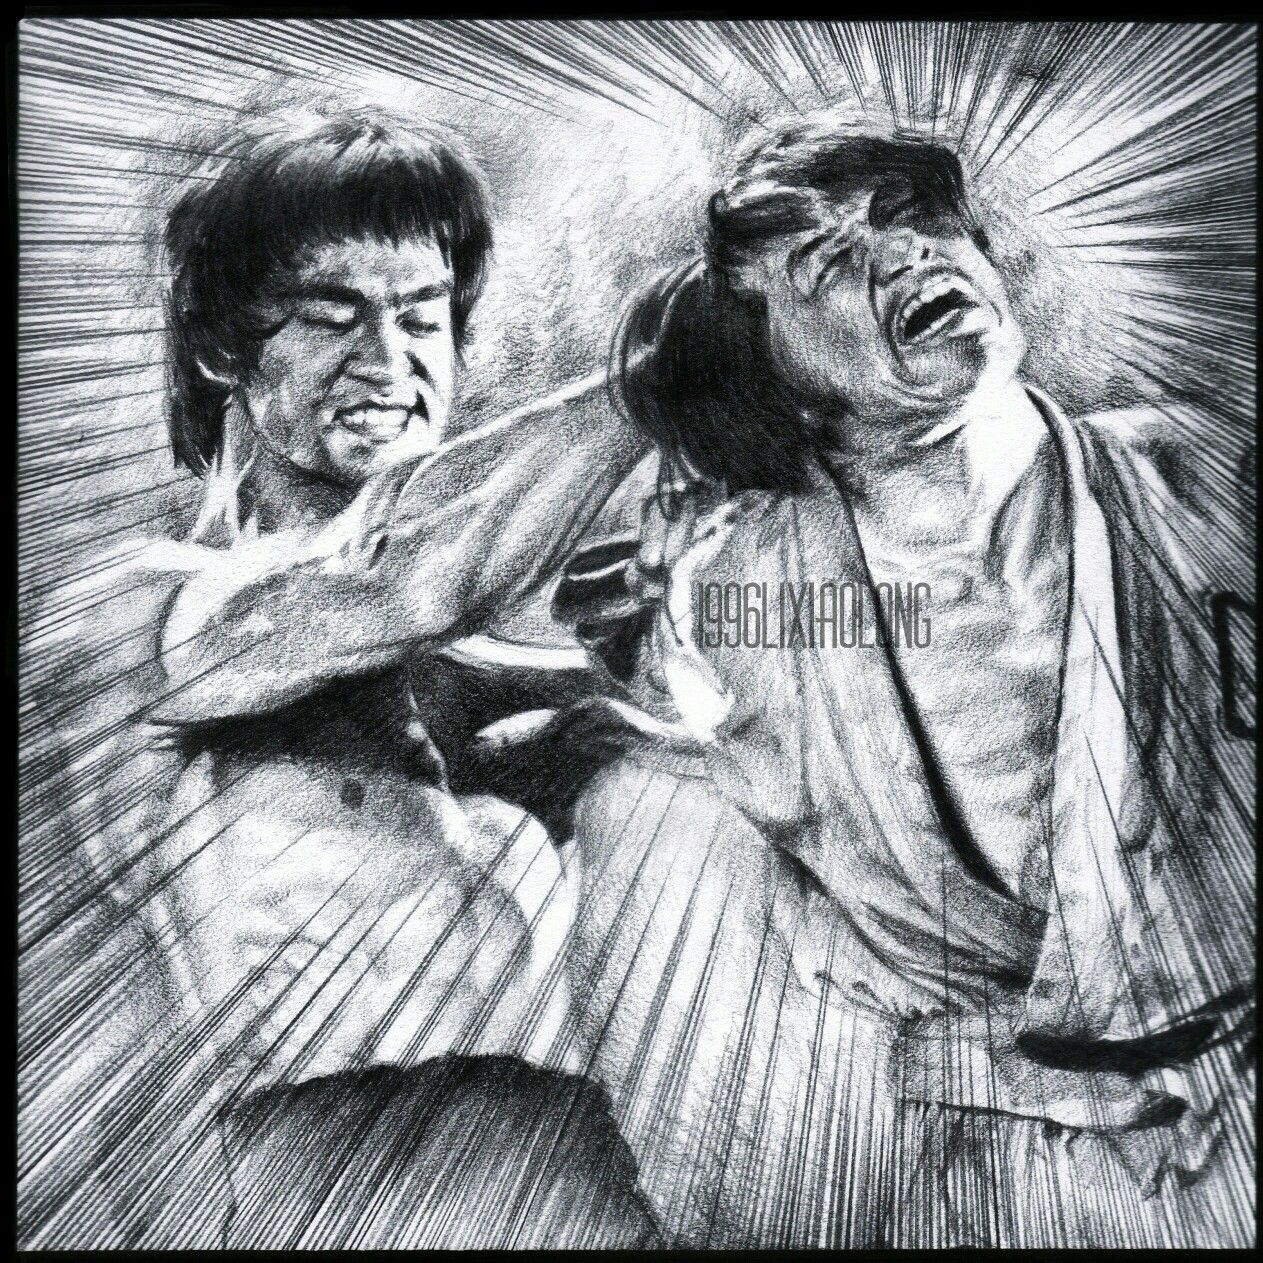 bruce lee vs jackie chan from enter the dragon by 1996lixiaolong